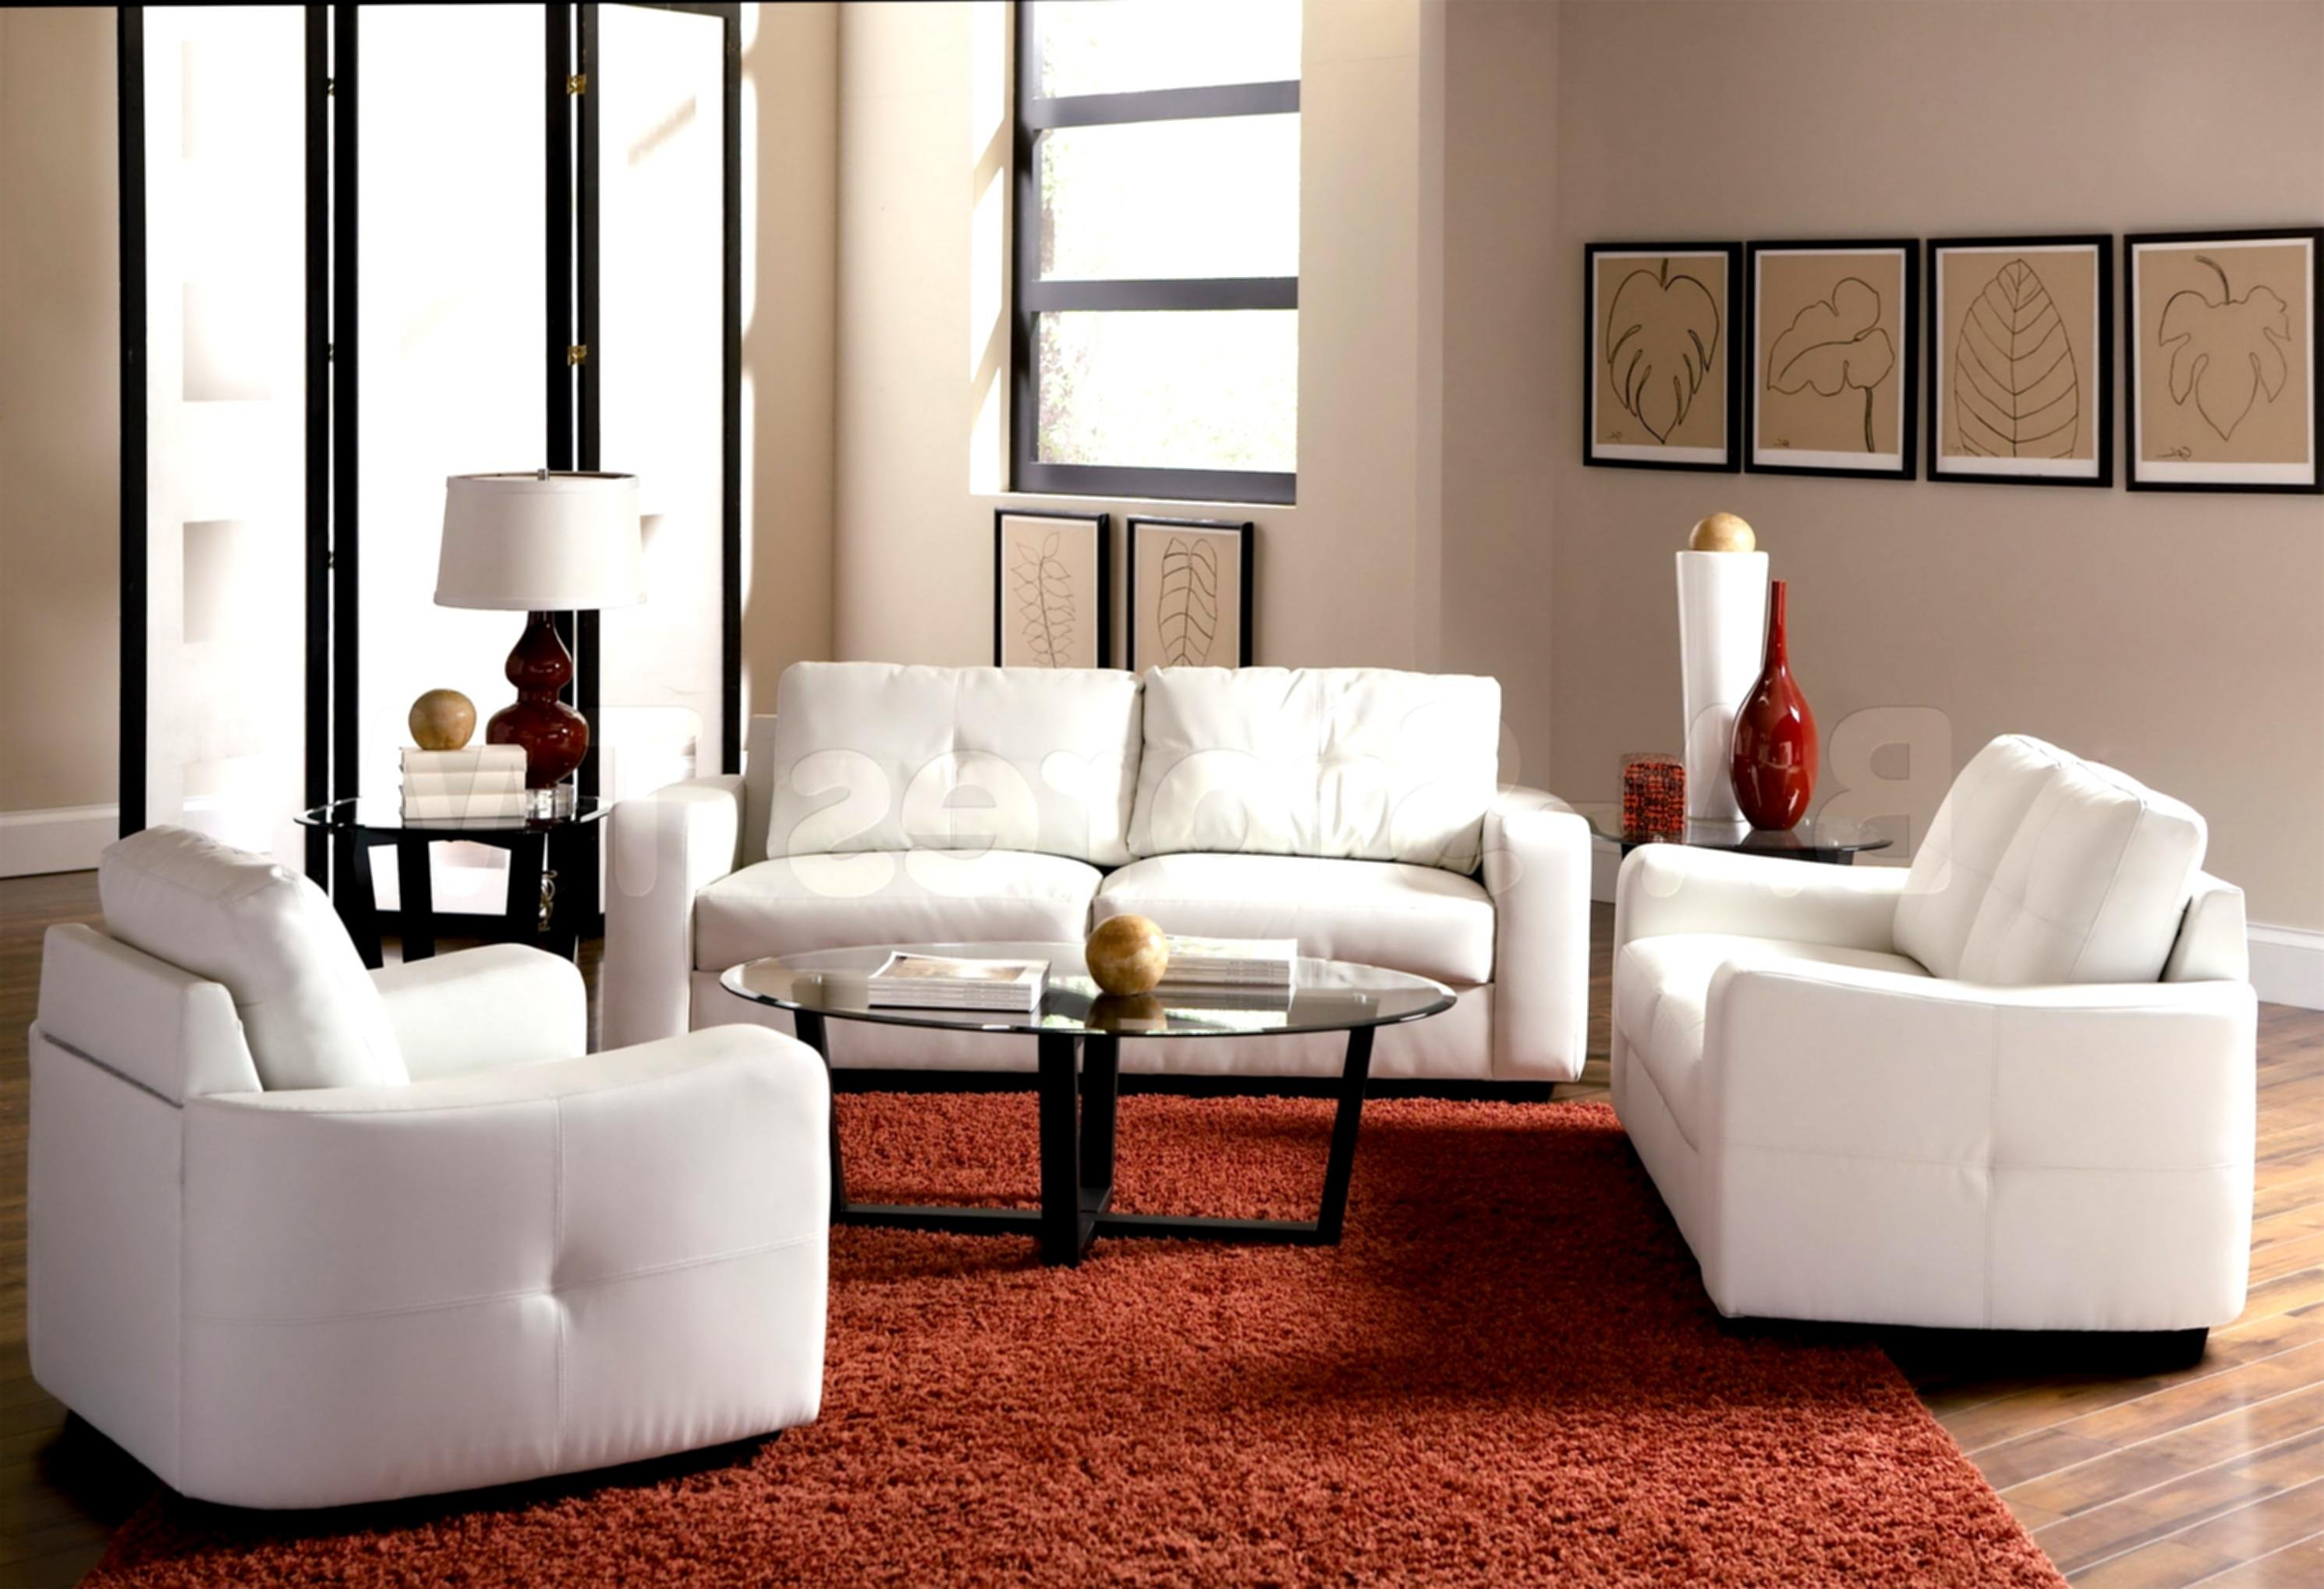 Sofa Set Deals Fantastic Lovely sofa Set Deals About Remodel Living Room sofa Portrait